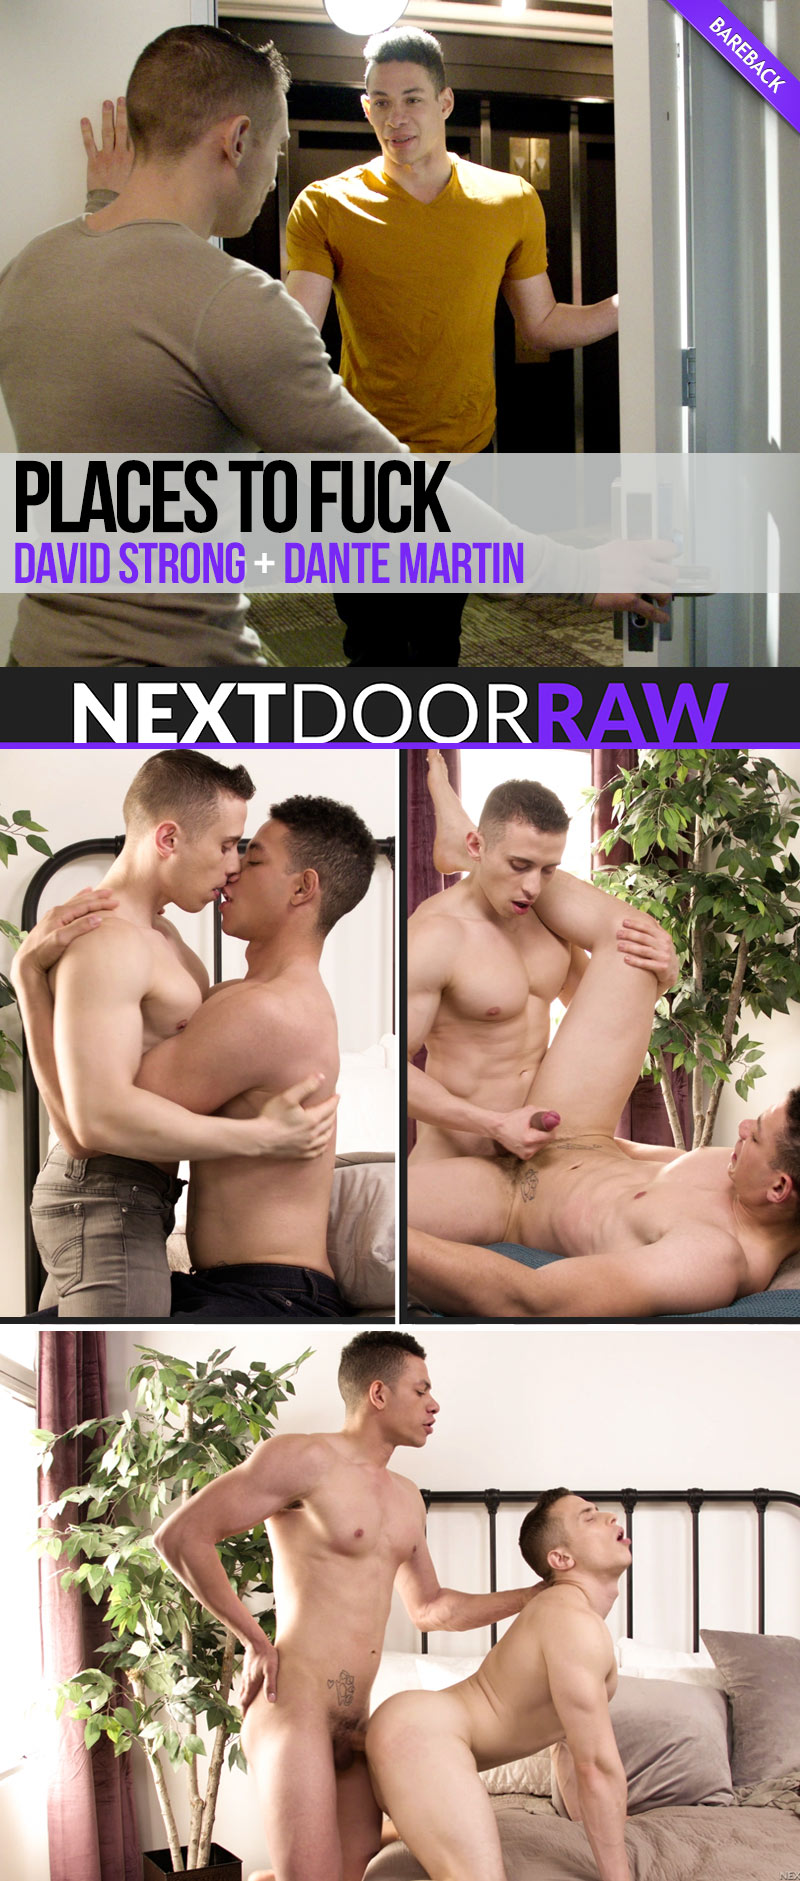 Places To Fuck (David Strong and Dante Martin Flip-Fuck) at NextDoorRAW!